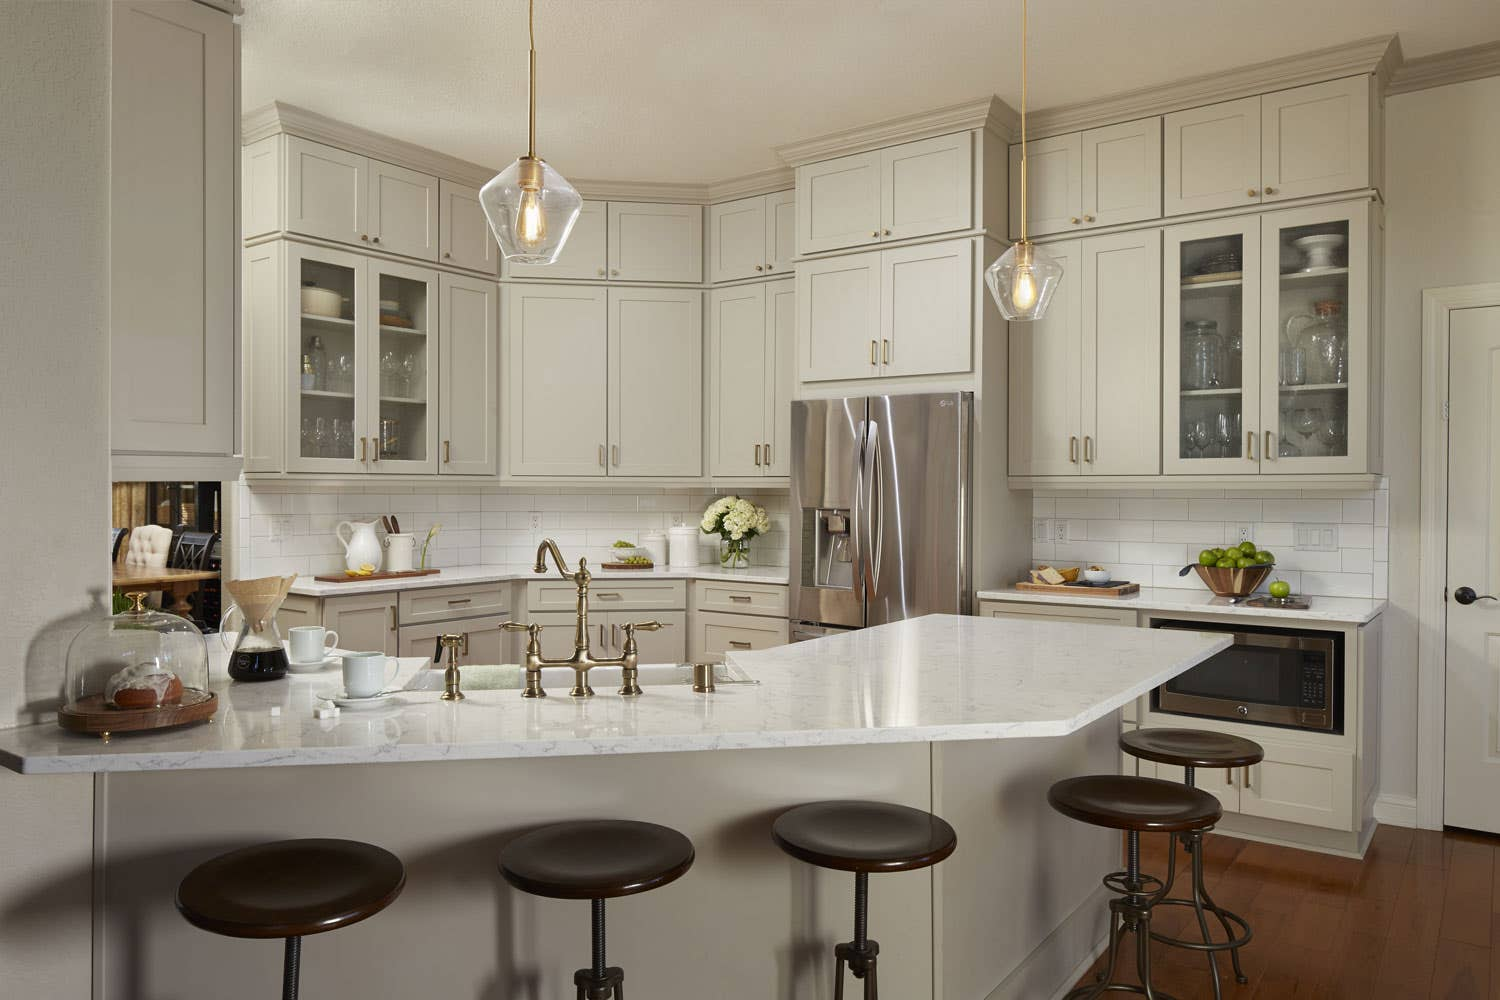 transitional gray kitchen remodeled with white countertops and glass cabinet doors